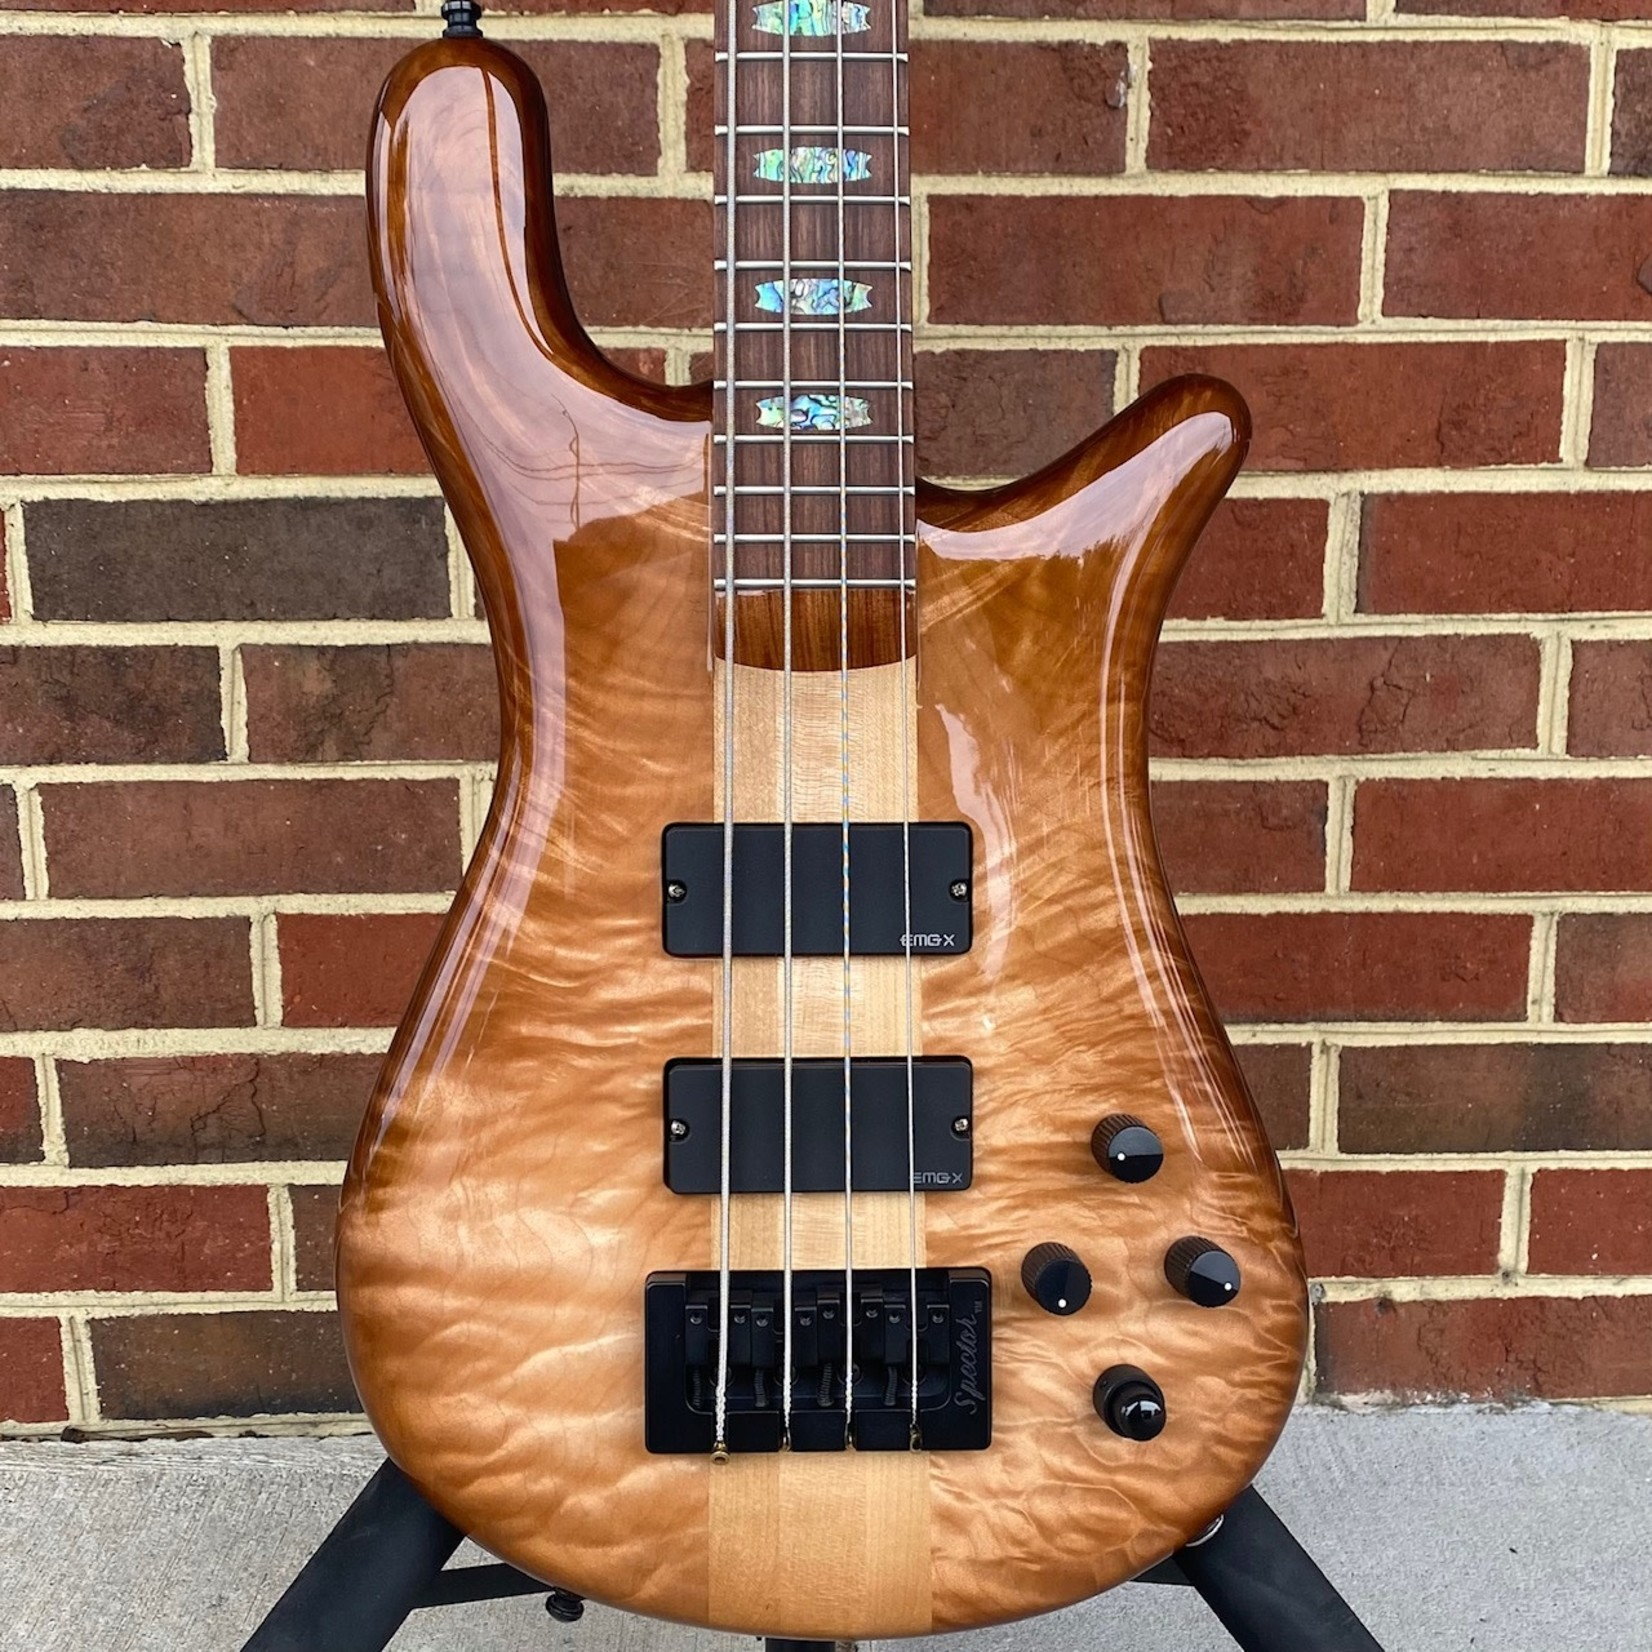 Spector Spector USA NS-4,  Curly Maple Top, Tobacco Sunburst, Weight Relieved Reclaimed Redwood Back, Maple Neck, Pau Ferro Fretboard, Abalone Inlays, Standard NS Neck, EMG 35DCX Pickups, Darkglass Tone Capsule, Hipshot Tuners